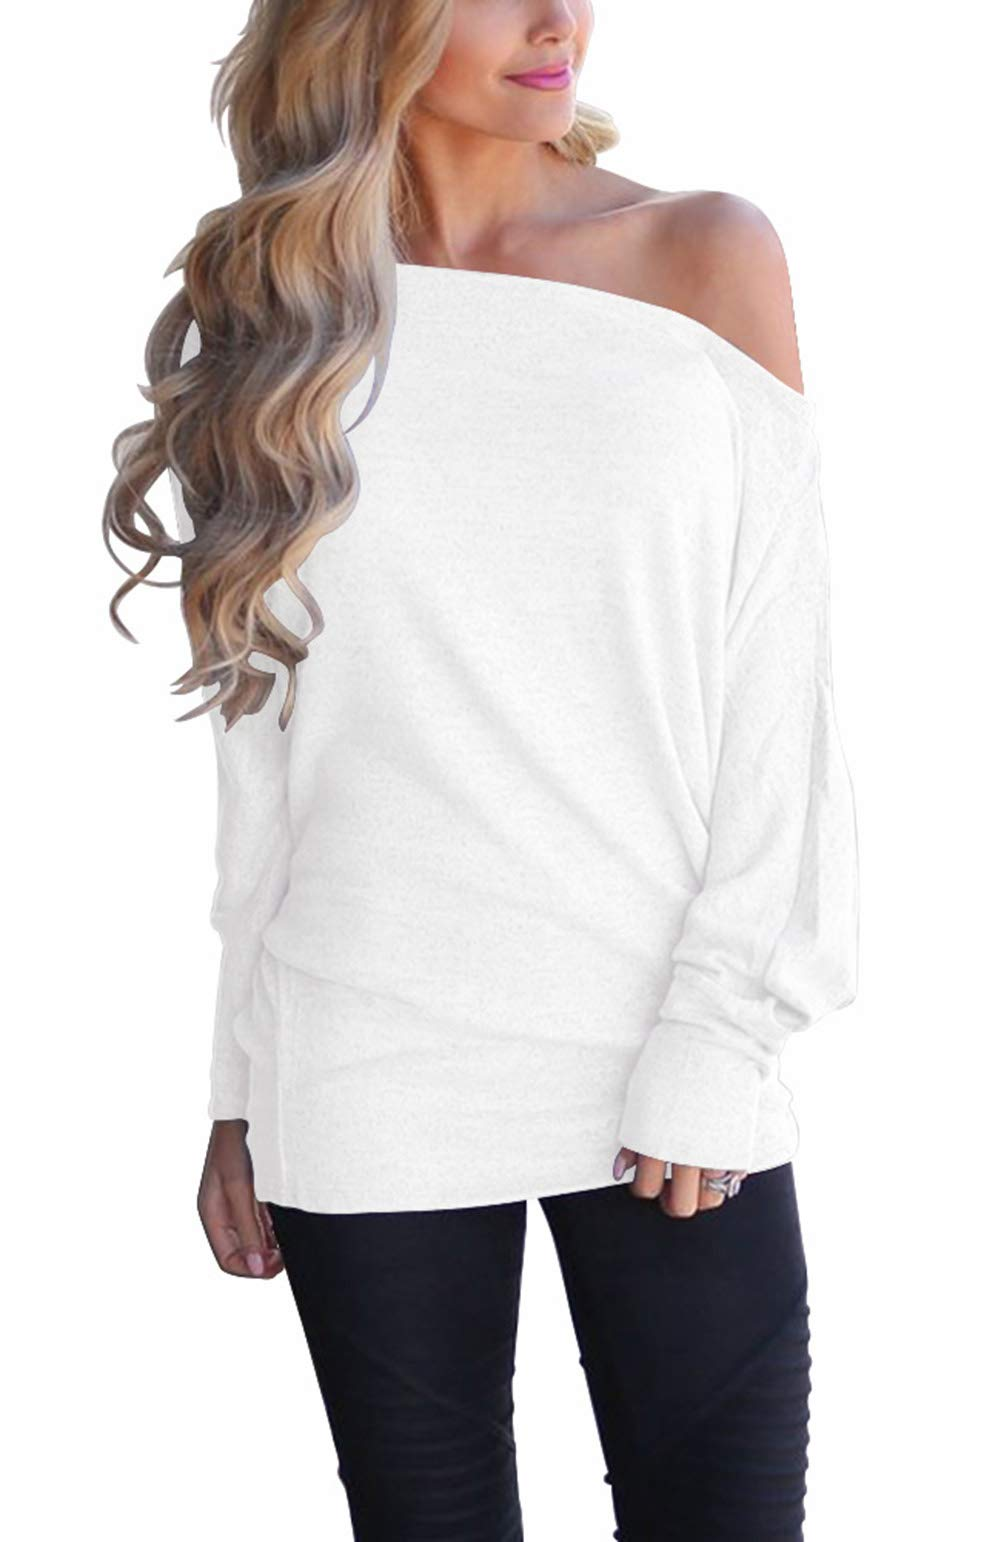 LACOZY Women's Off Shoulder Pullover Sweater Batwing Long Sleeve Shirts Tunic Tops Oversized Sweatshirts White Medium by LACOZY